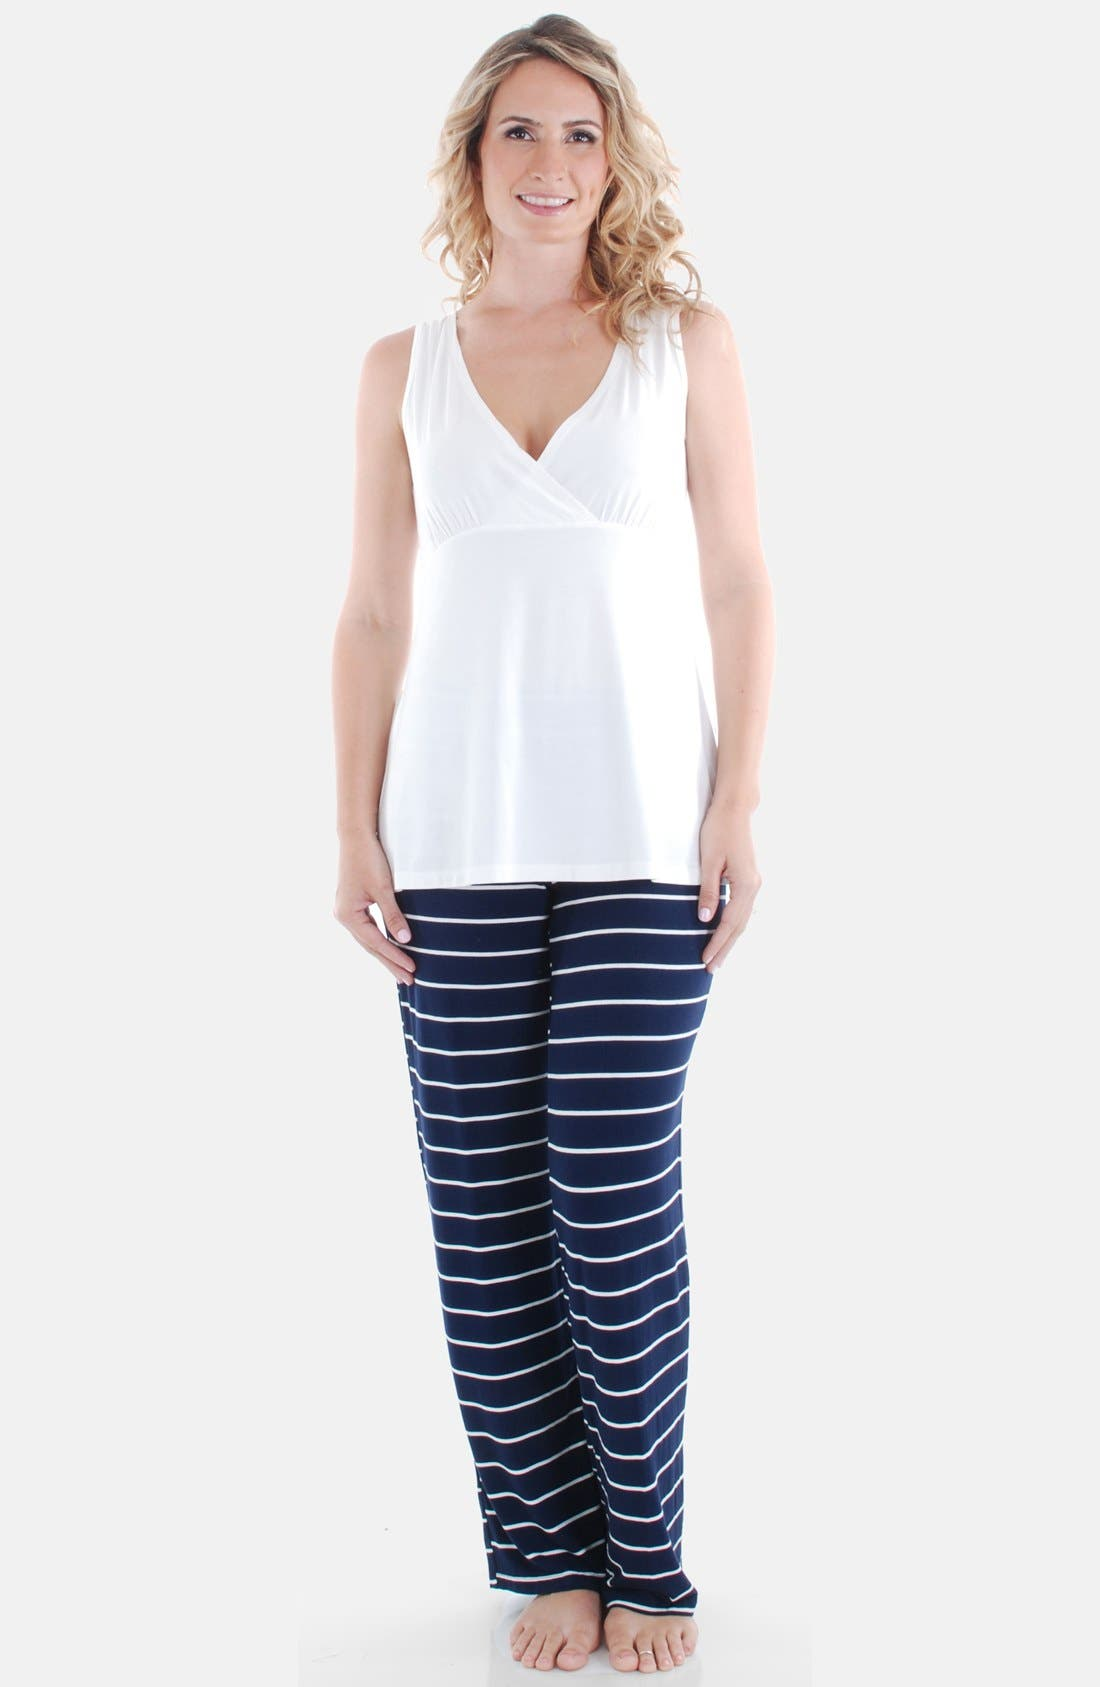 EVERLY GREY, Roxanne - During & After 5-Piece Maternity Sleepwear Set, Alternate thumbnail 7, color, NAVY